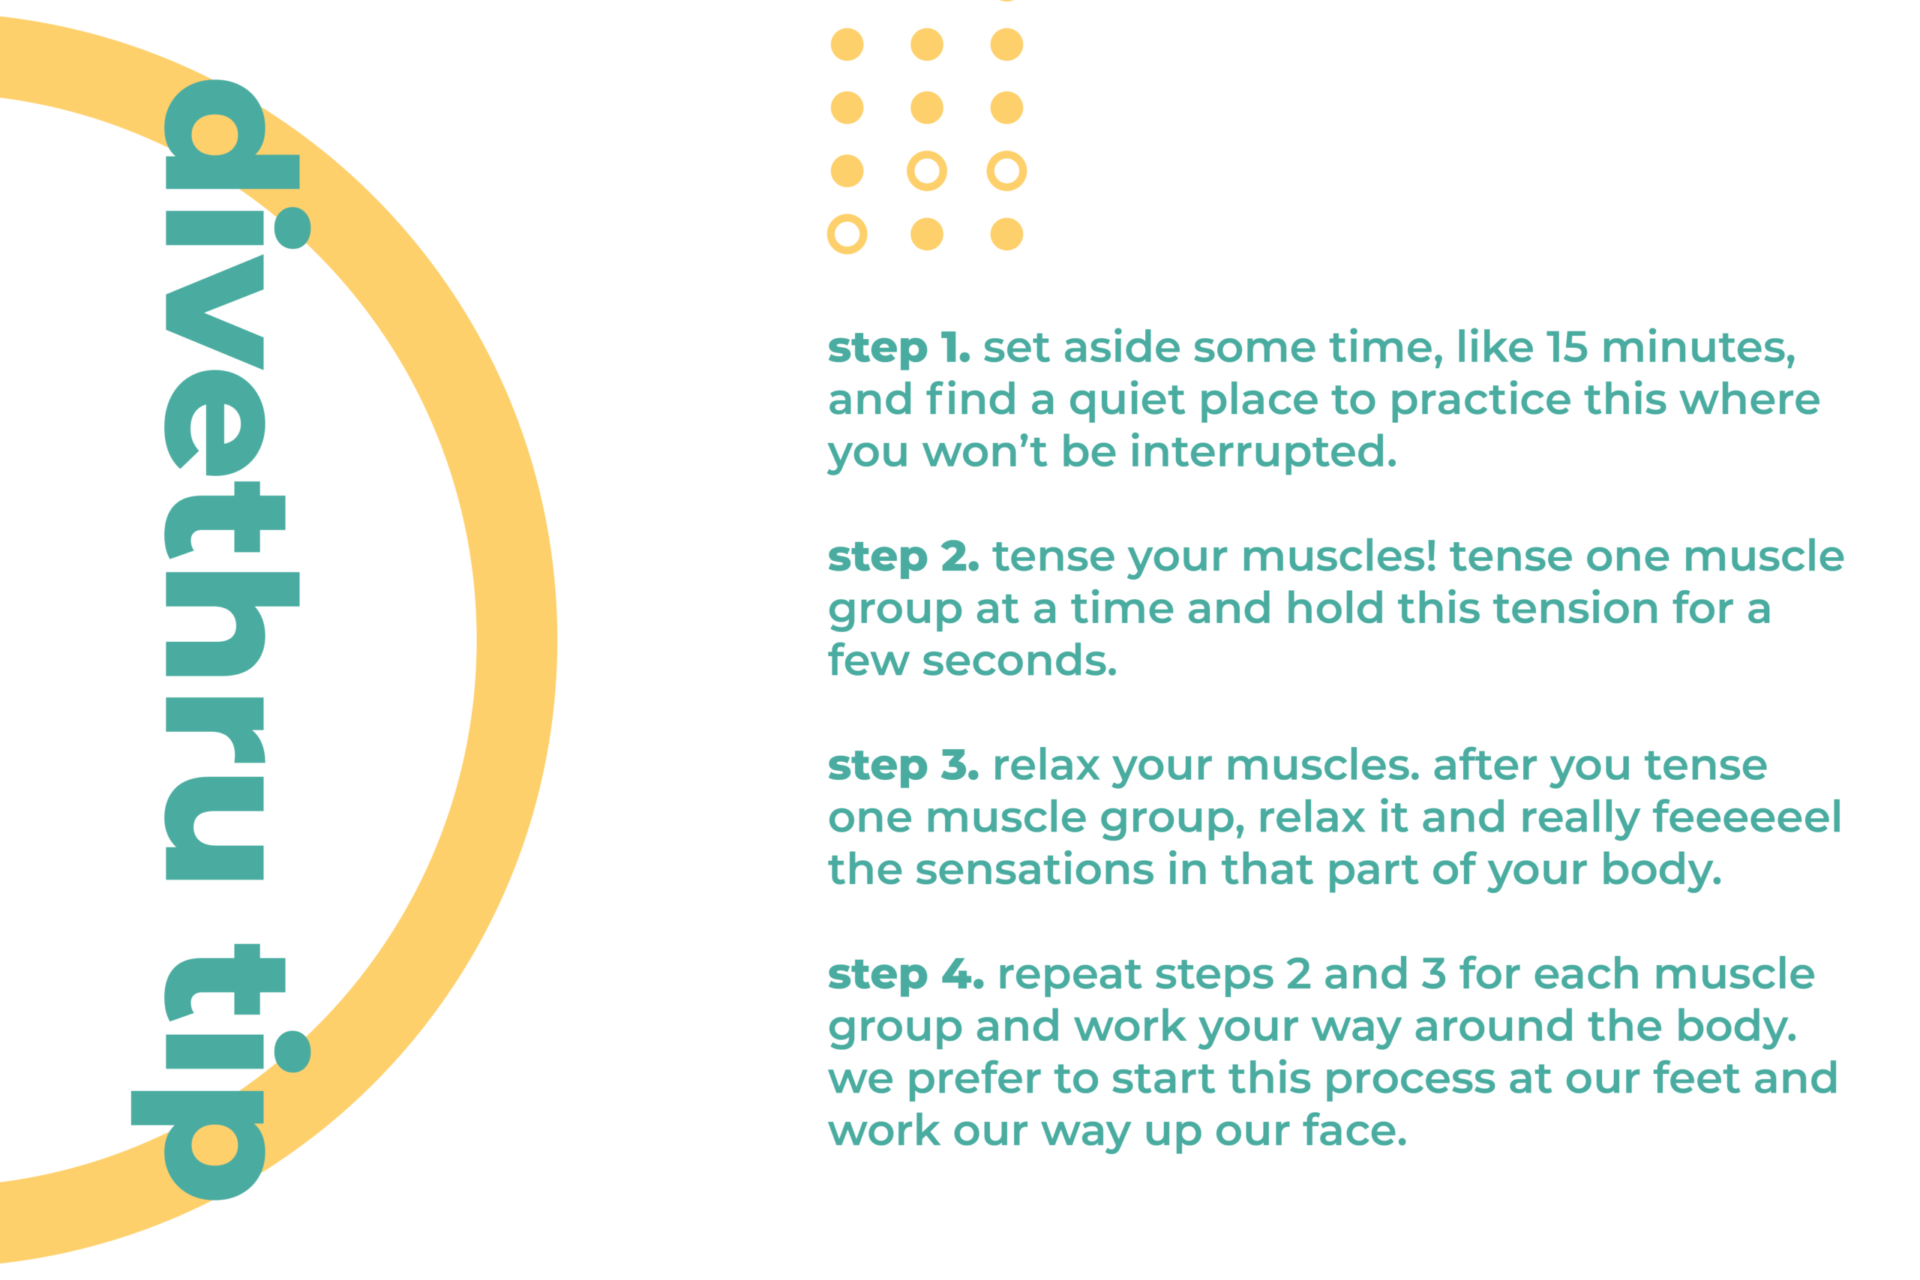 This image gives you a tip on how to deal with a physical sign of anxiety. Step 1. Set aside some time, like 15 minutes, and find a quiet place to practice this where you won't be interrupted. Step 2. Tense your muscles! Tense one muscle group at a time and hold this tension for a few seconds. Step 3. Relax your muscles. After you tense one muscle group, relax it and really feeeeeel the sensations in that part of your body. Step 4. Repeat steps 2 and 3 for each muscle group and work your way around the body. We prefer to start this process at our feet and work our way up our face.